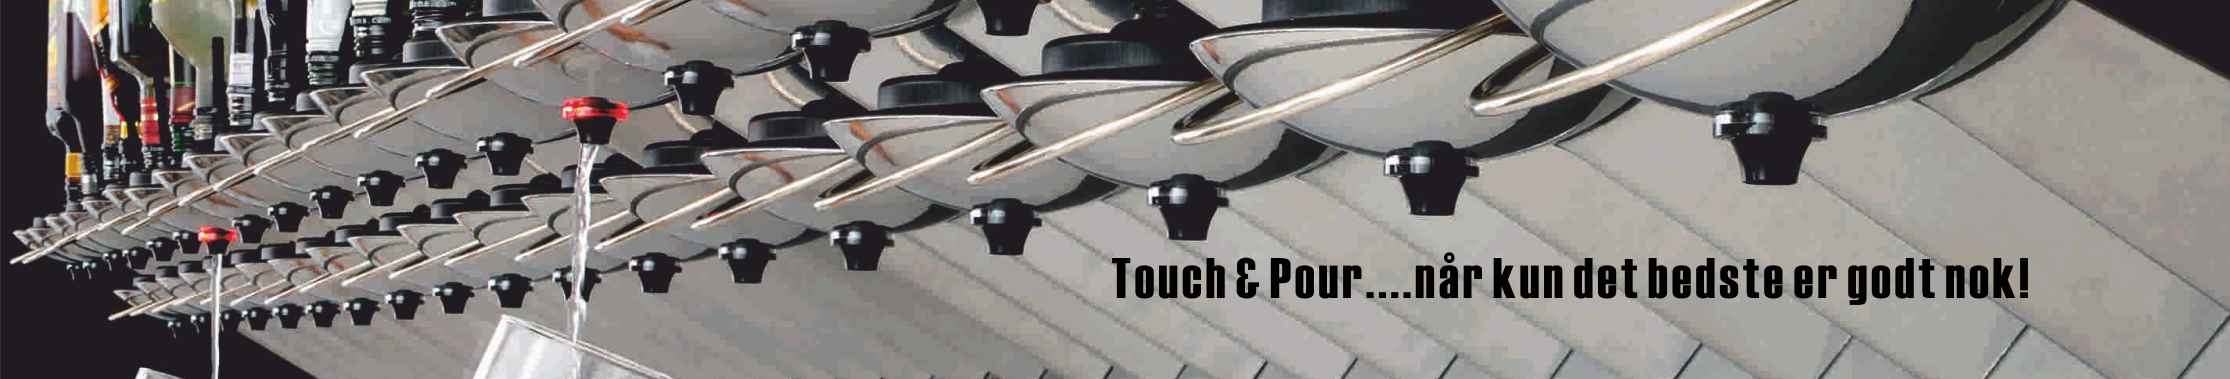 Touch and pour banner.jpg